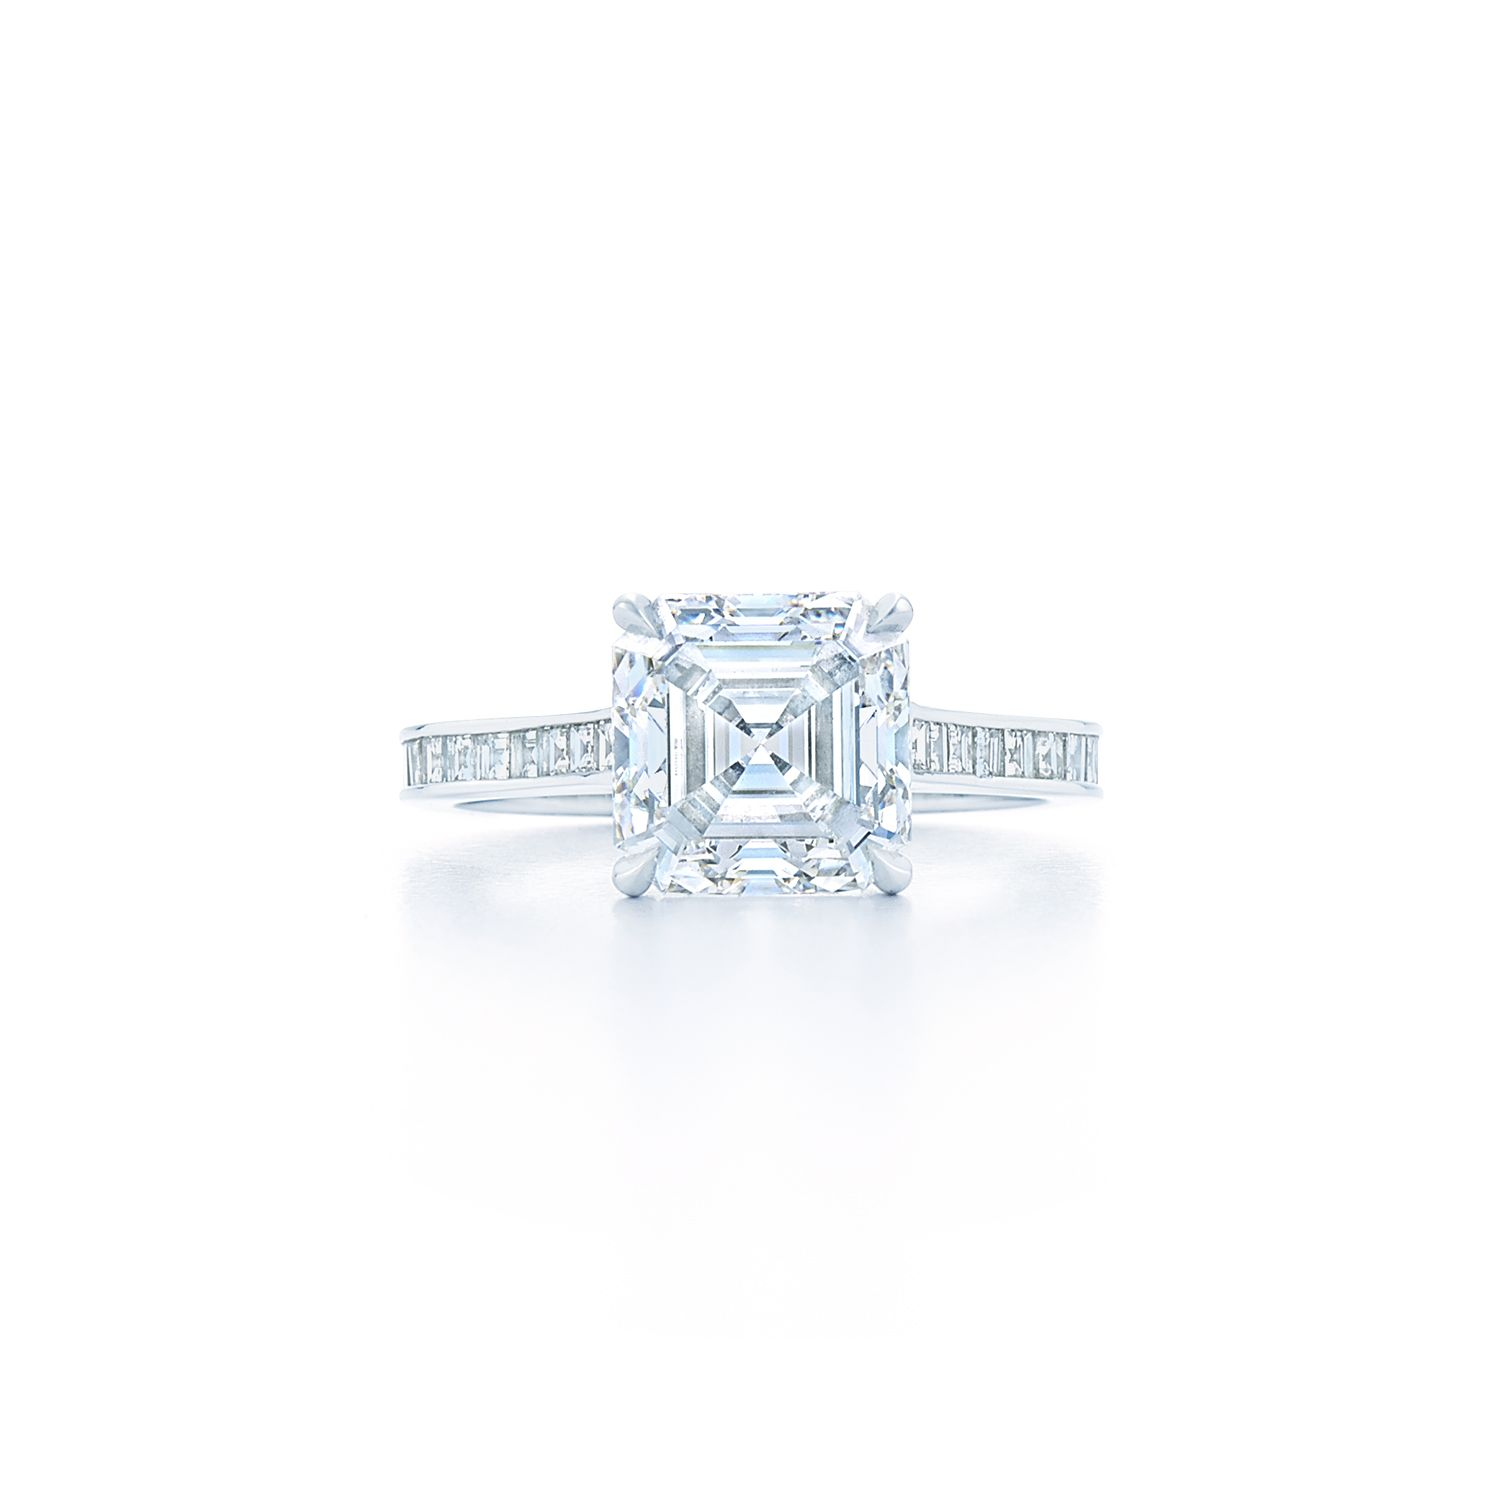 ring yadnrrr set rings epiphany engagement with diamond tw cute wedding alberti popaj facet bridal pc ct promise diamonique